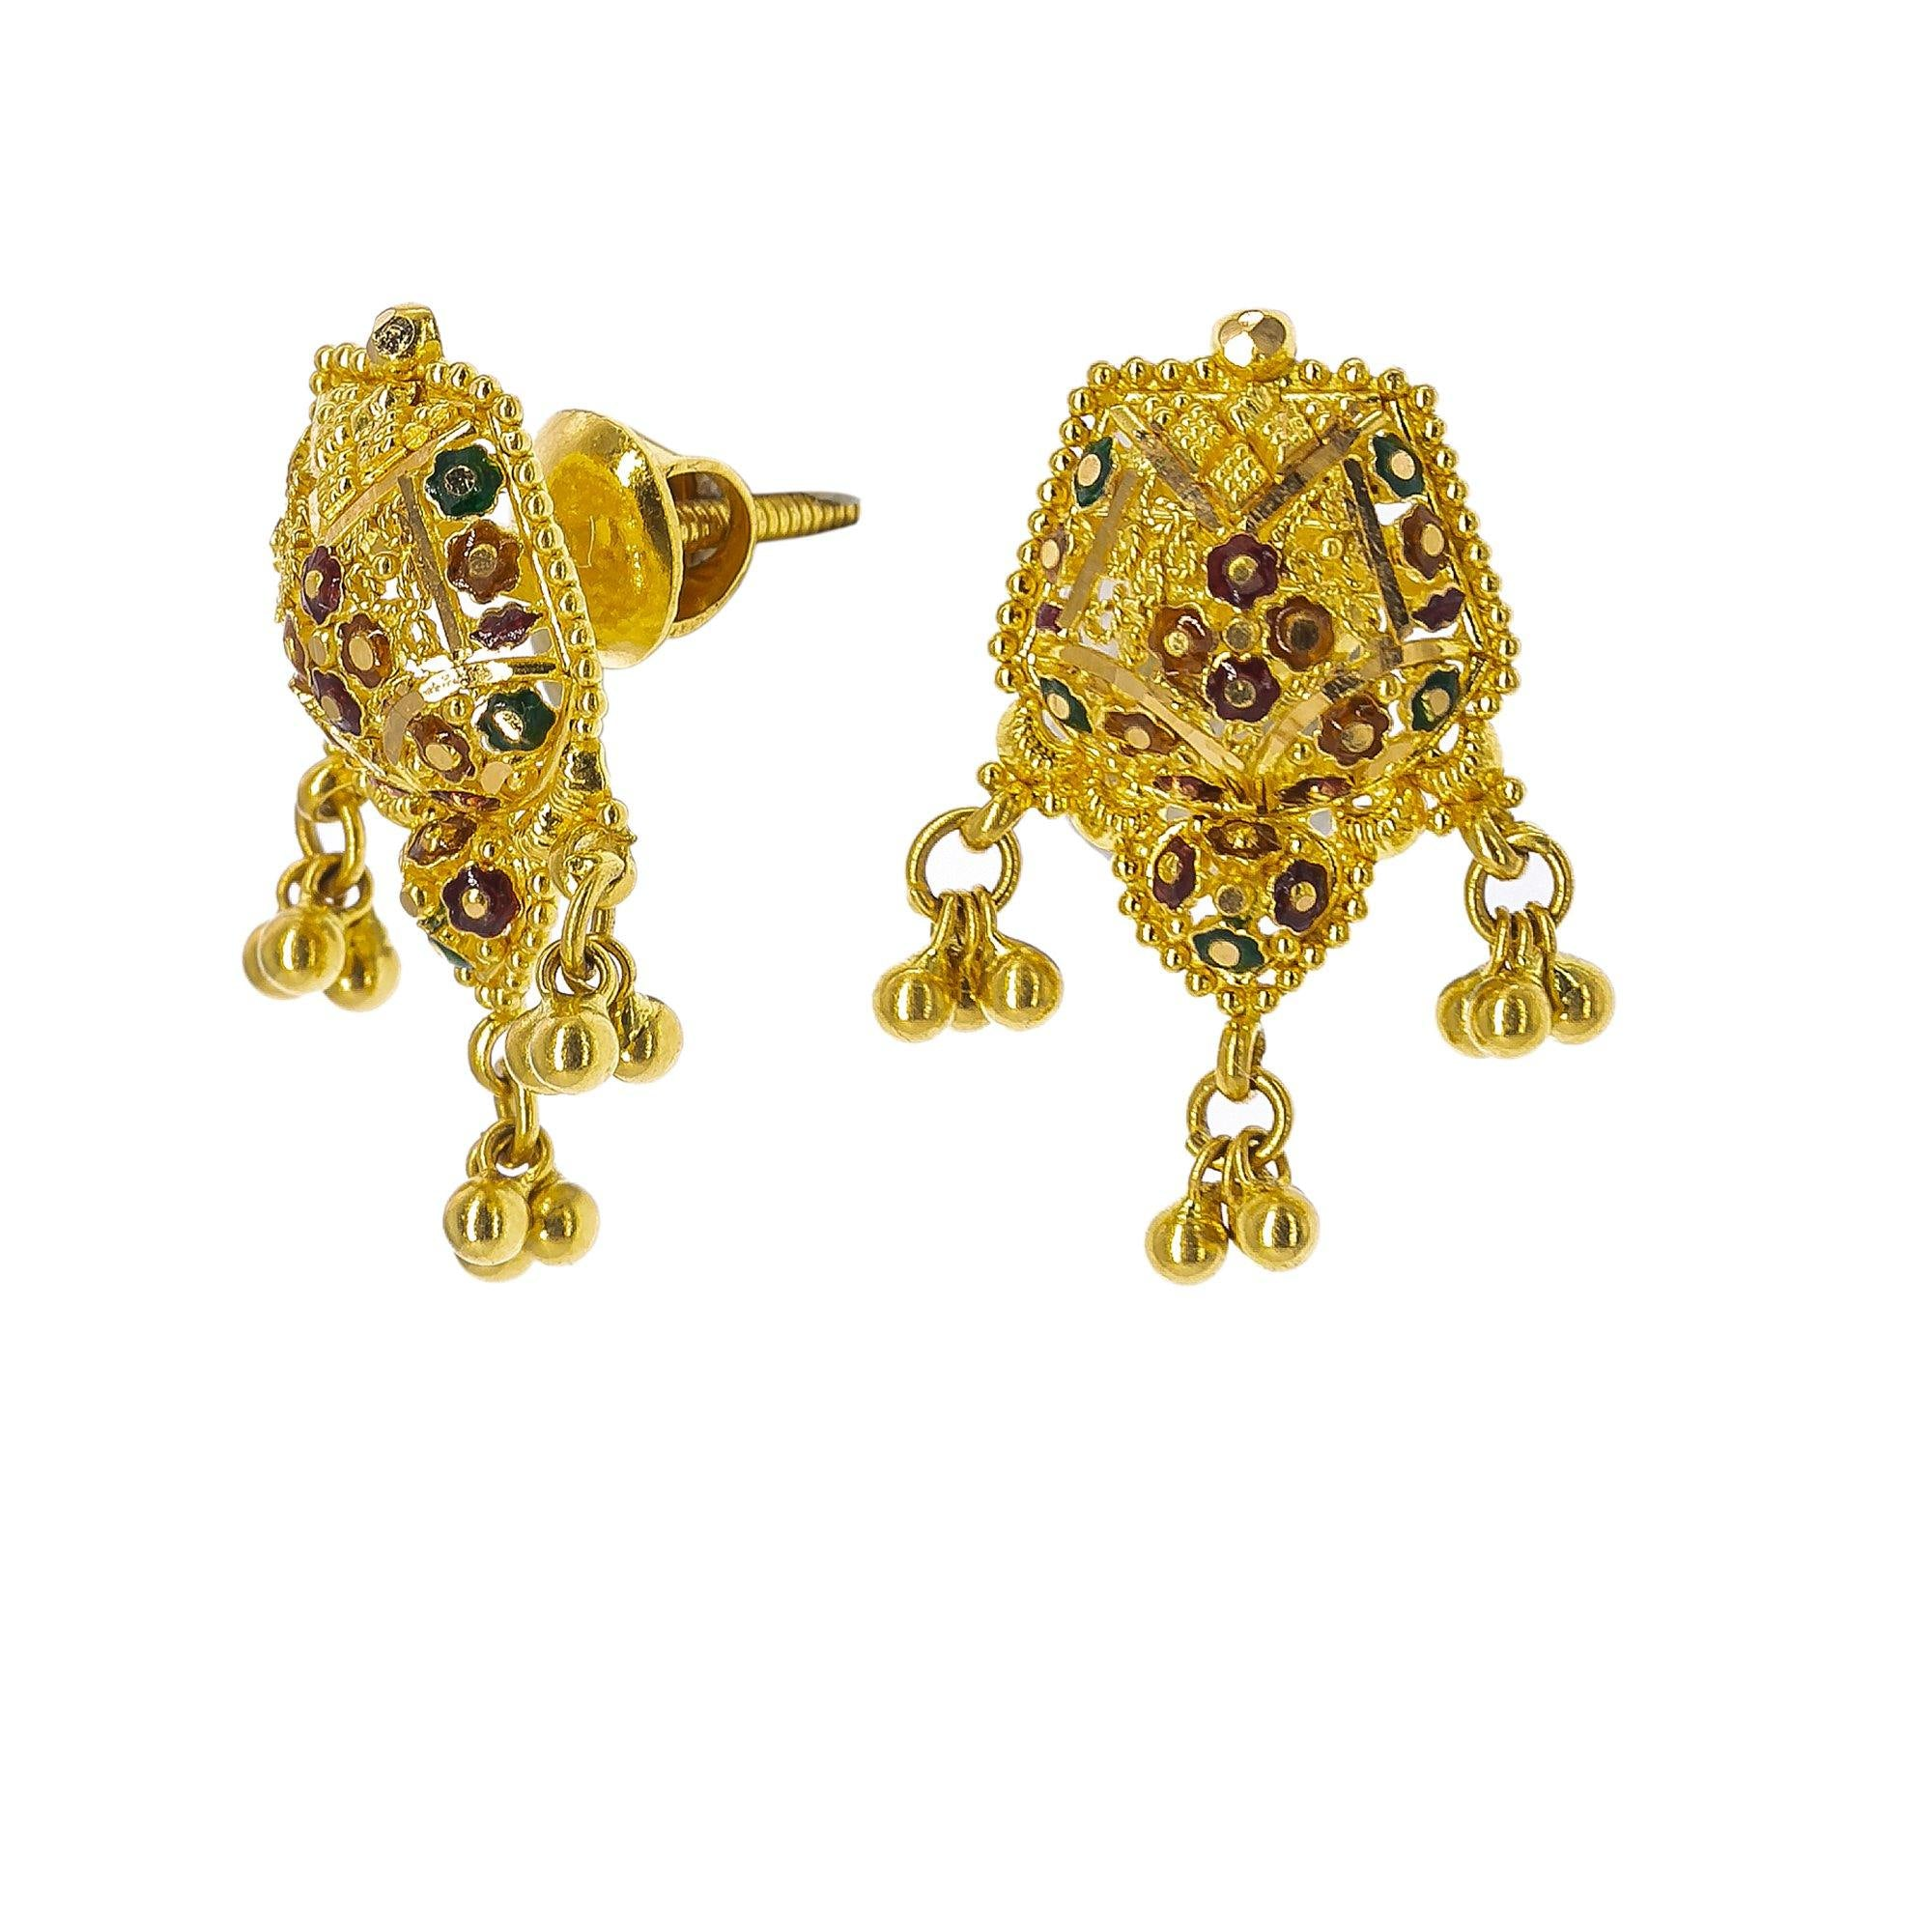 22K Yellow Gold Meenakari Necklace Set W/ Wheat Chains & Abstract Pendants